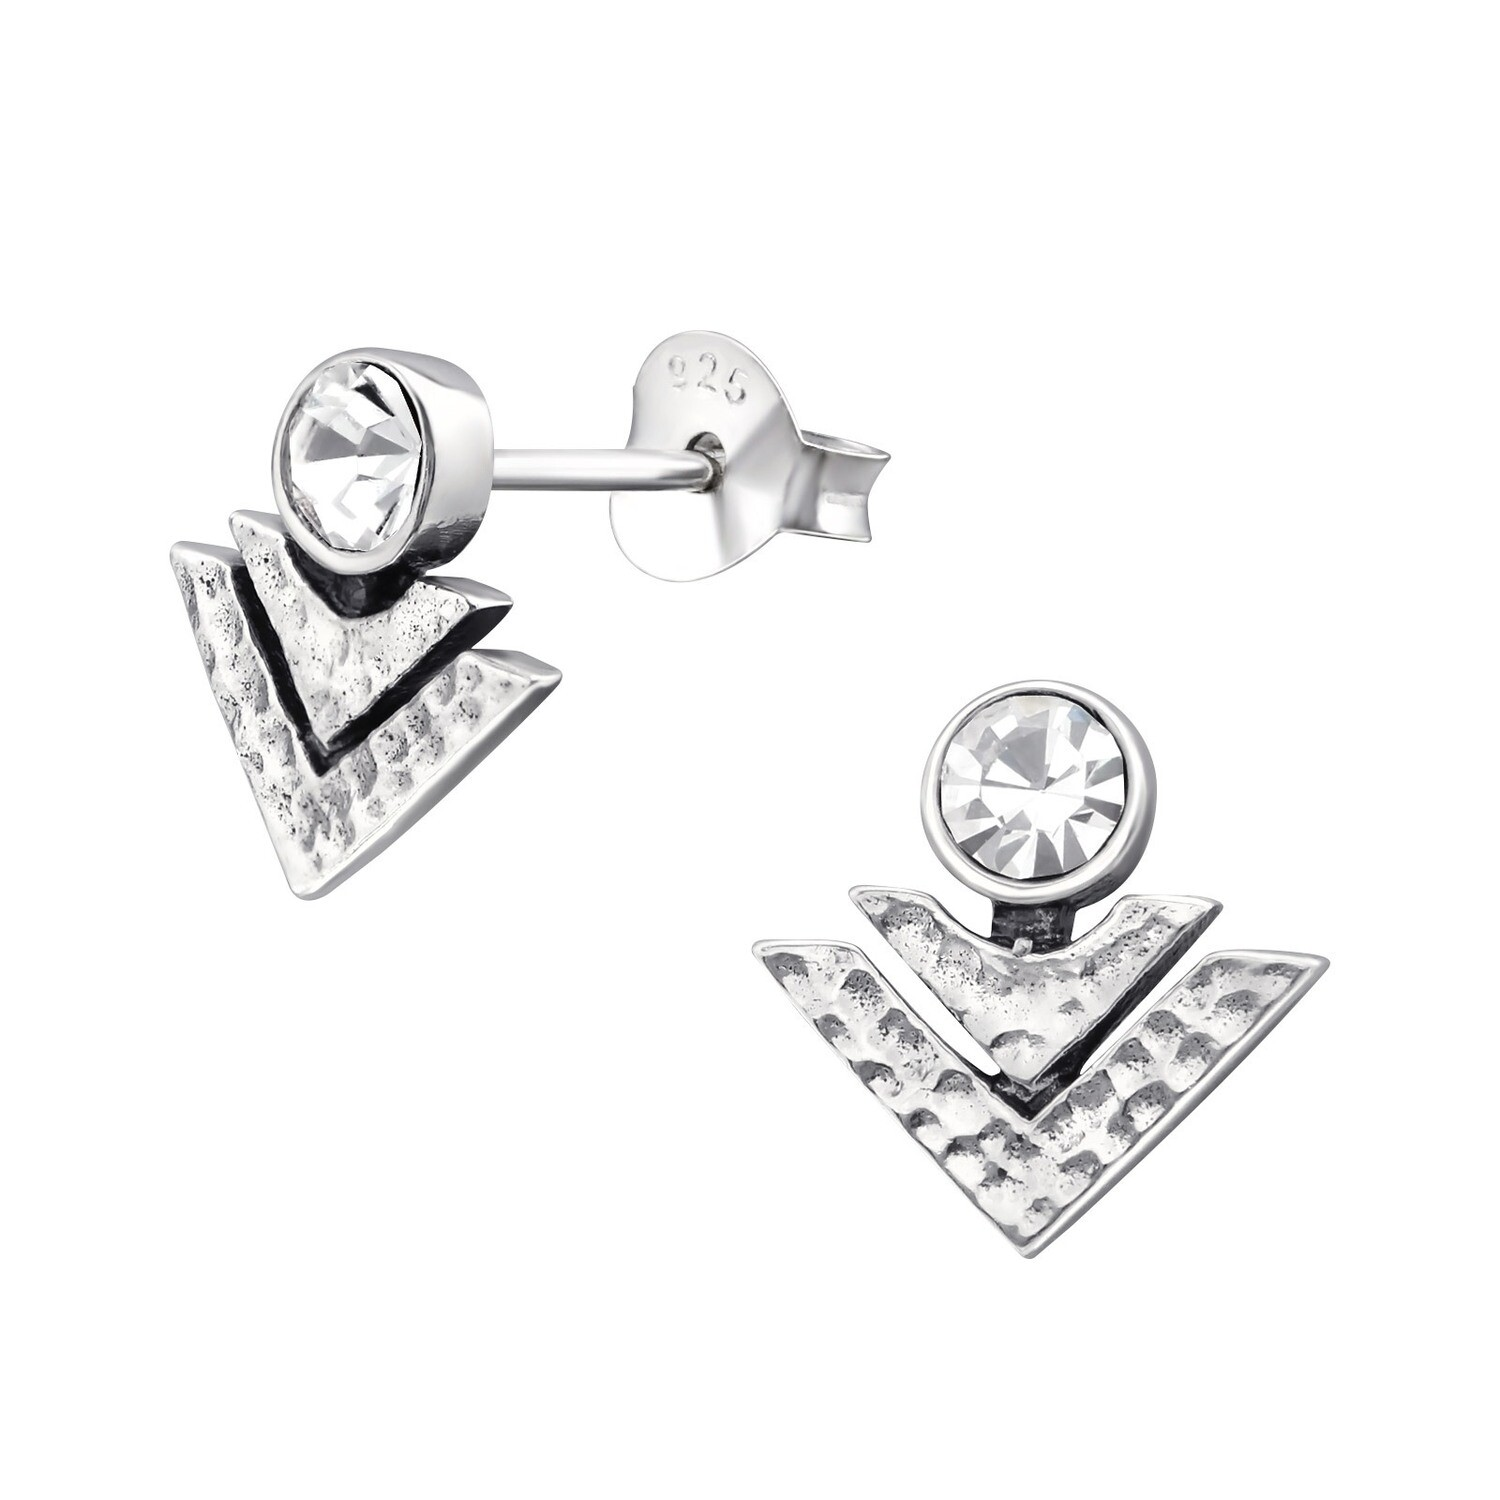 P36-41 Sterling Silver CZ Chevron Stack Posts